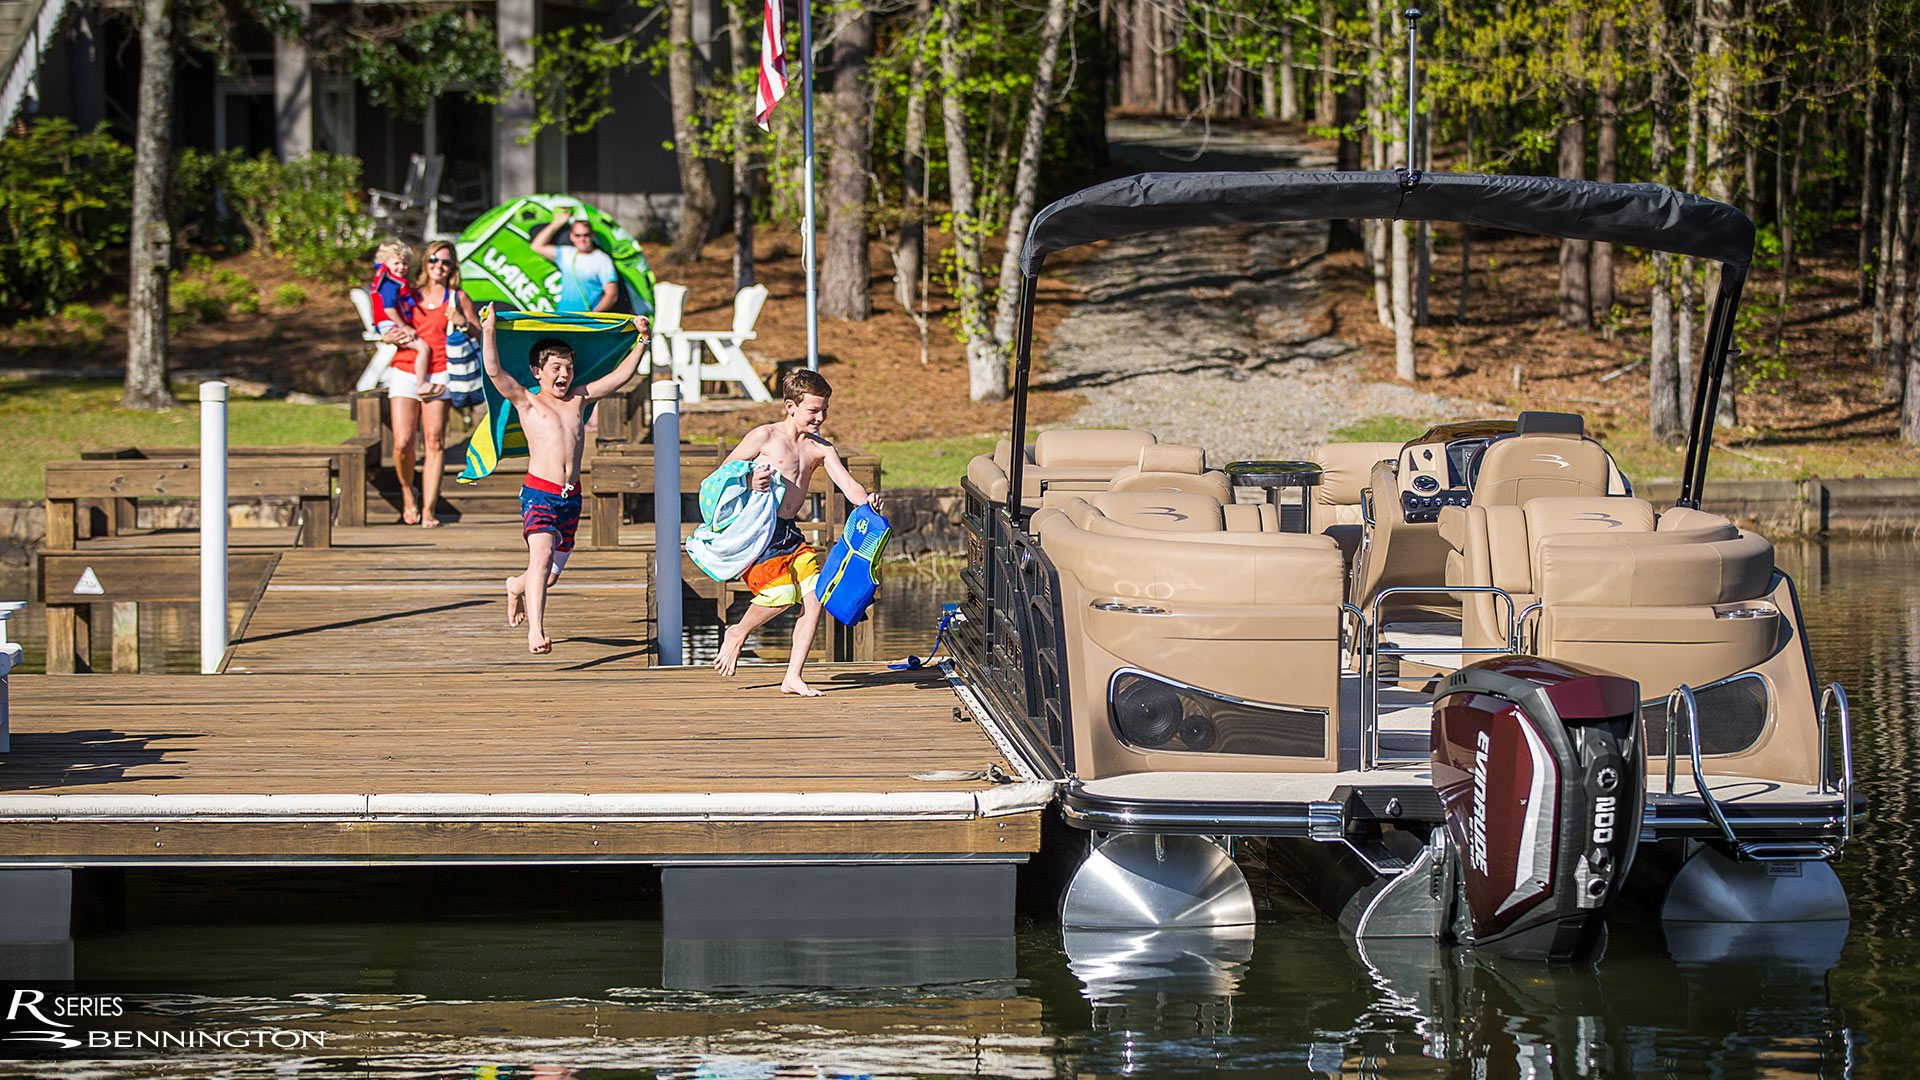 Bennington Pontoon Boats